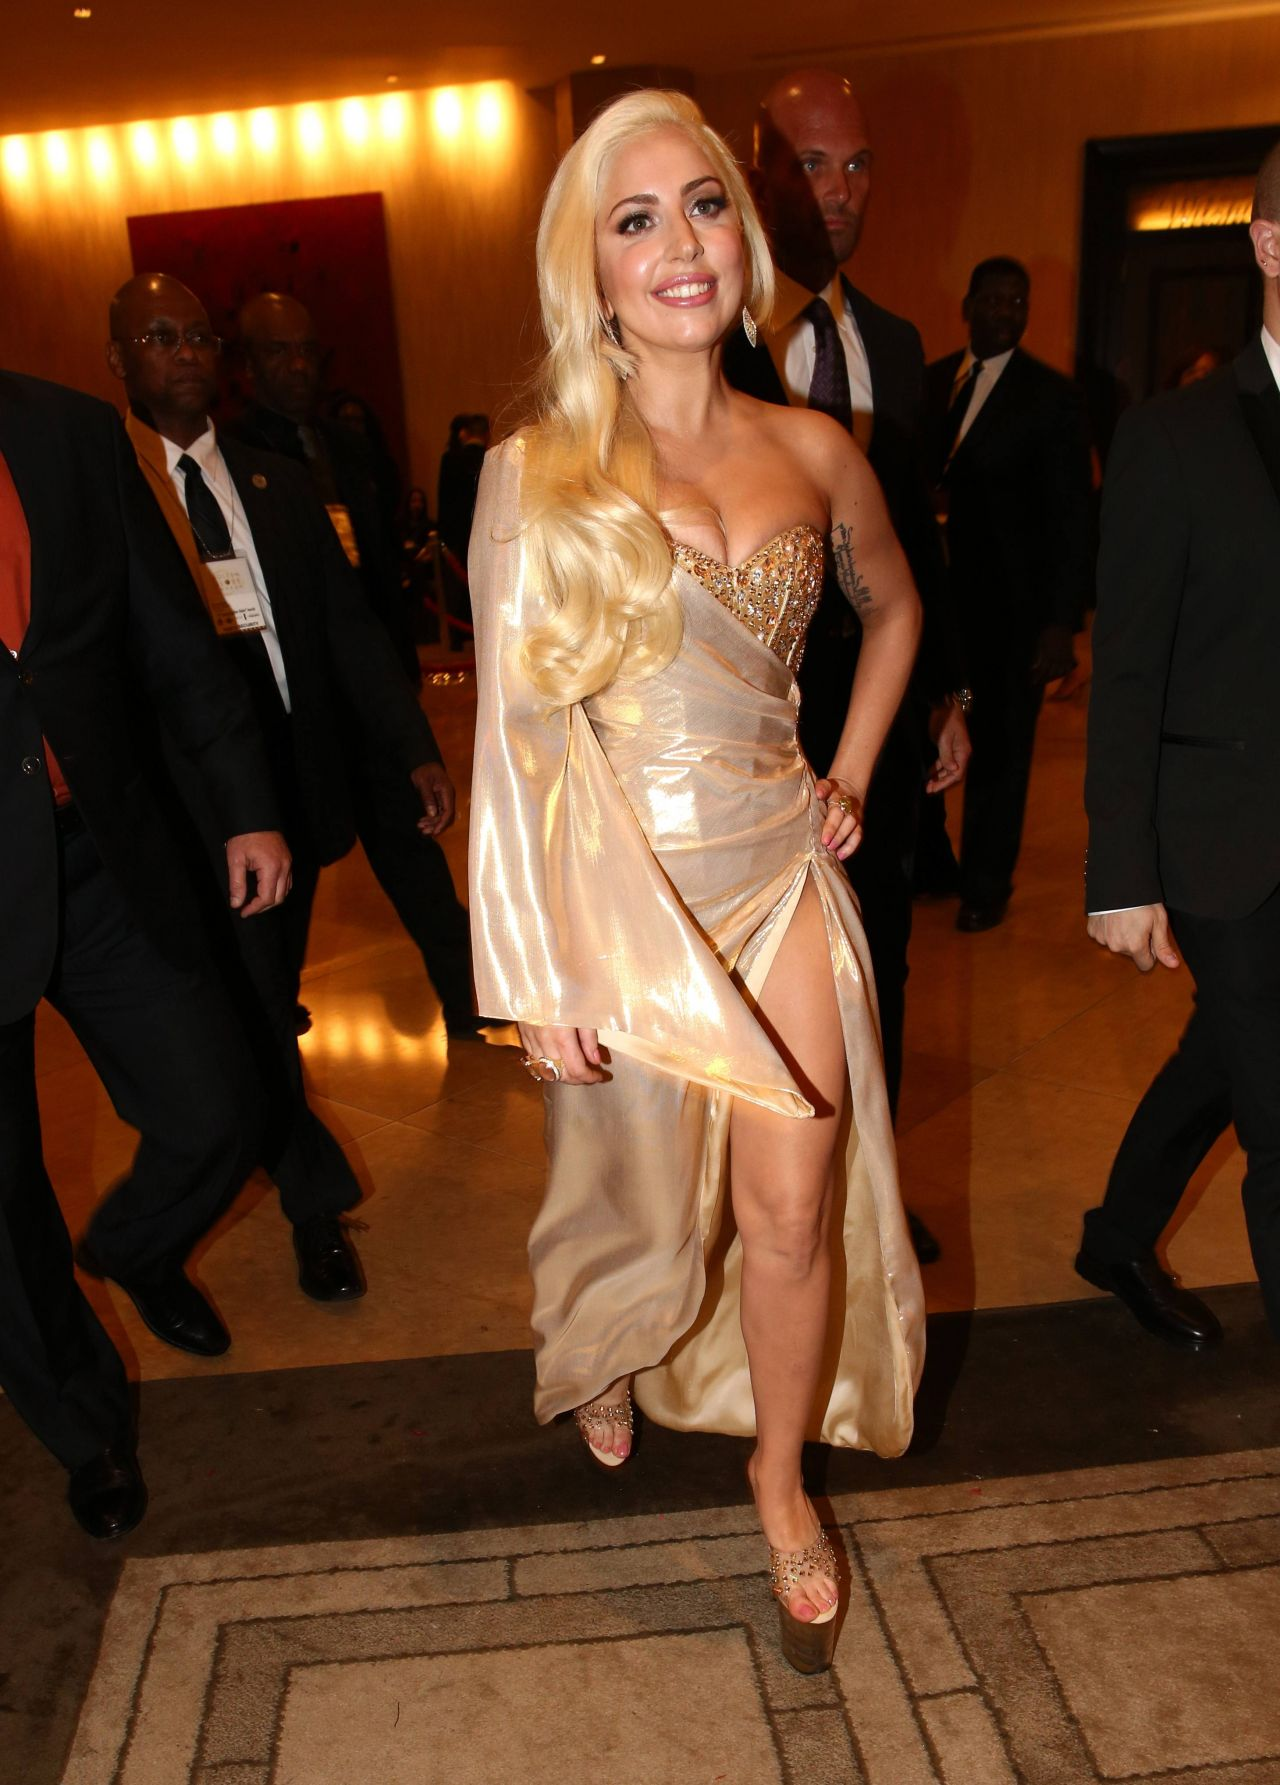 Lady Gaga Wears Perry Meek Bespoke Gold Dress at 2014